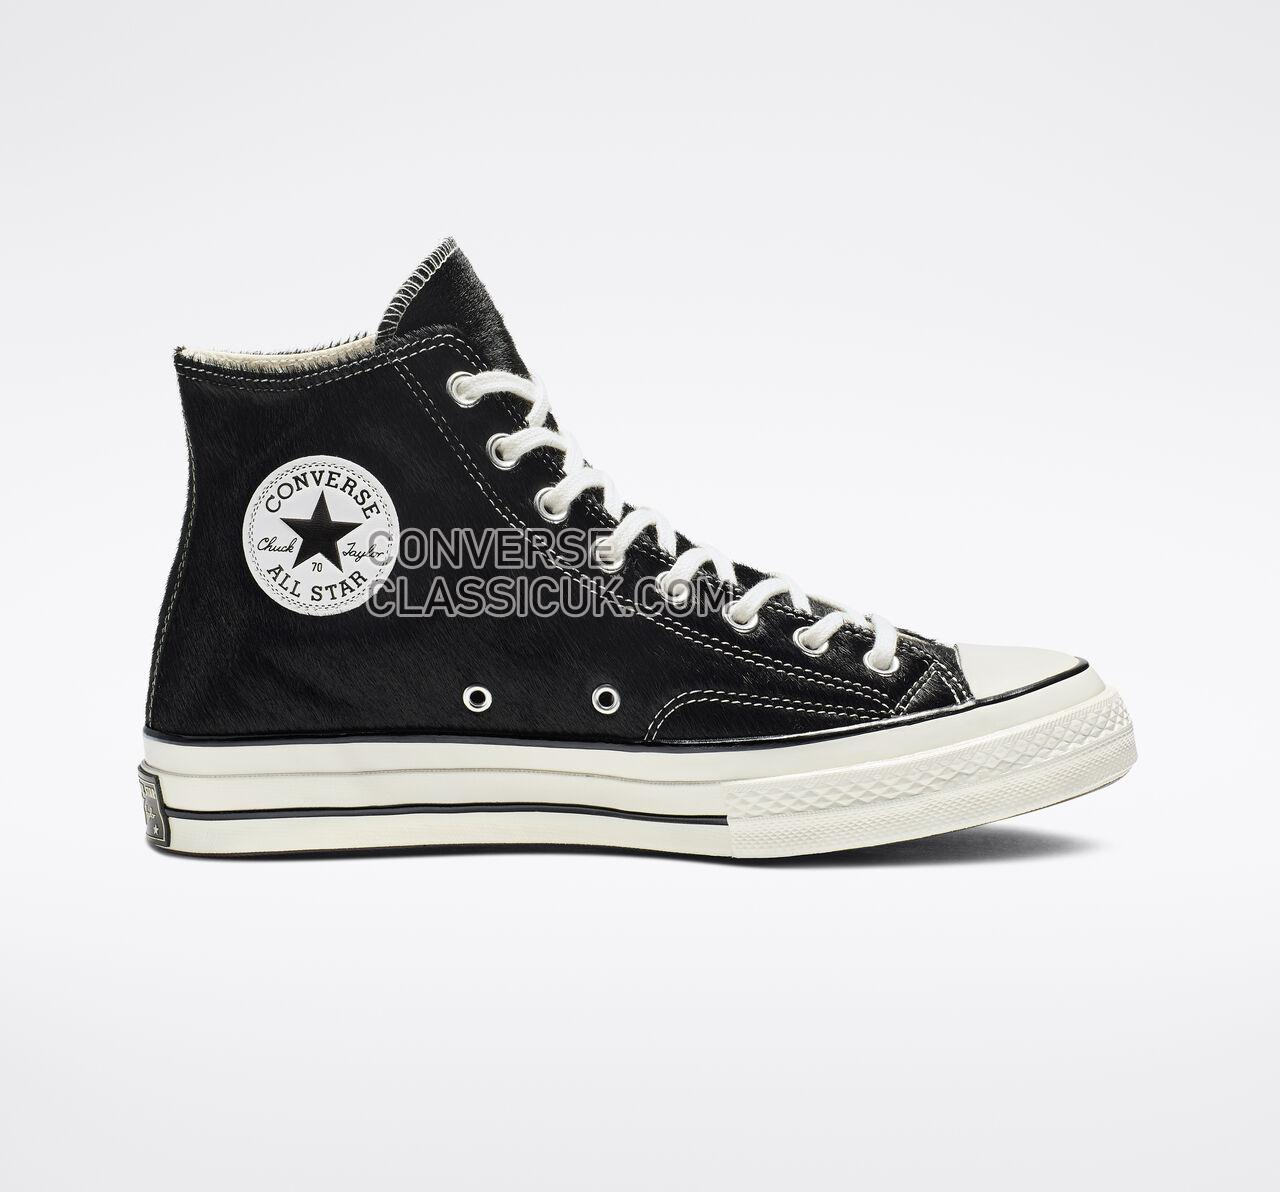 Converse Chuck 70 Pony Hair High Top Mens Womens Unisex 164588C Black/Egret/Natrual Shoes